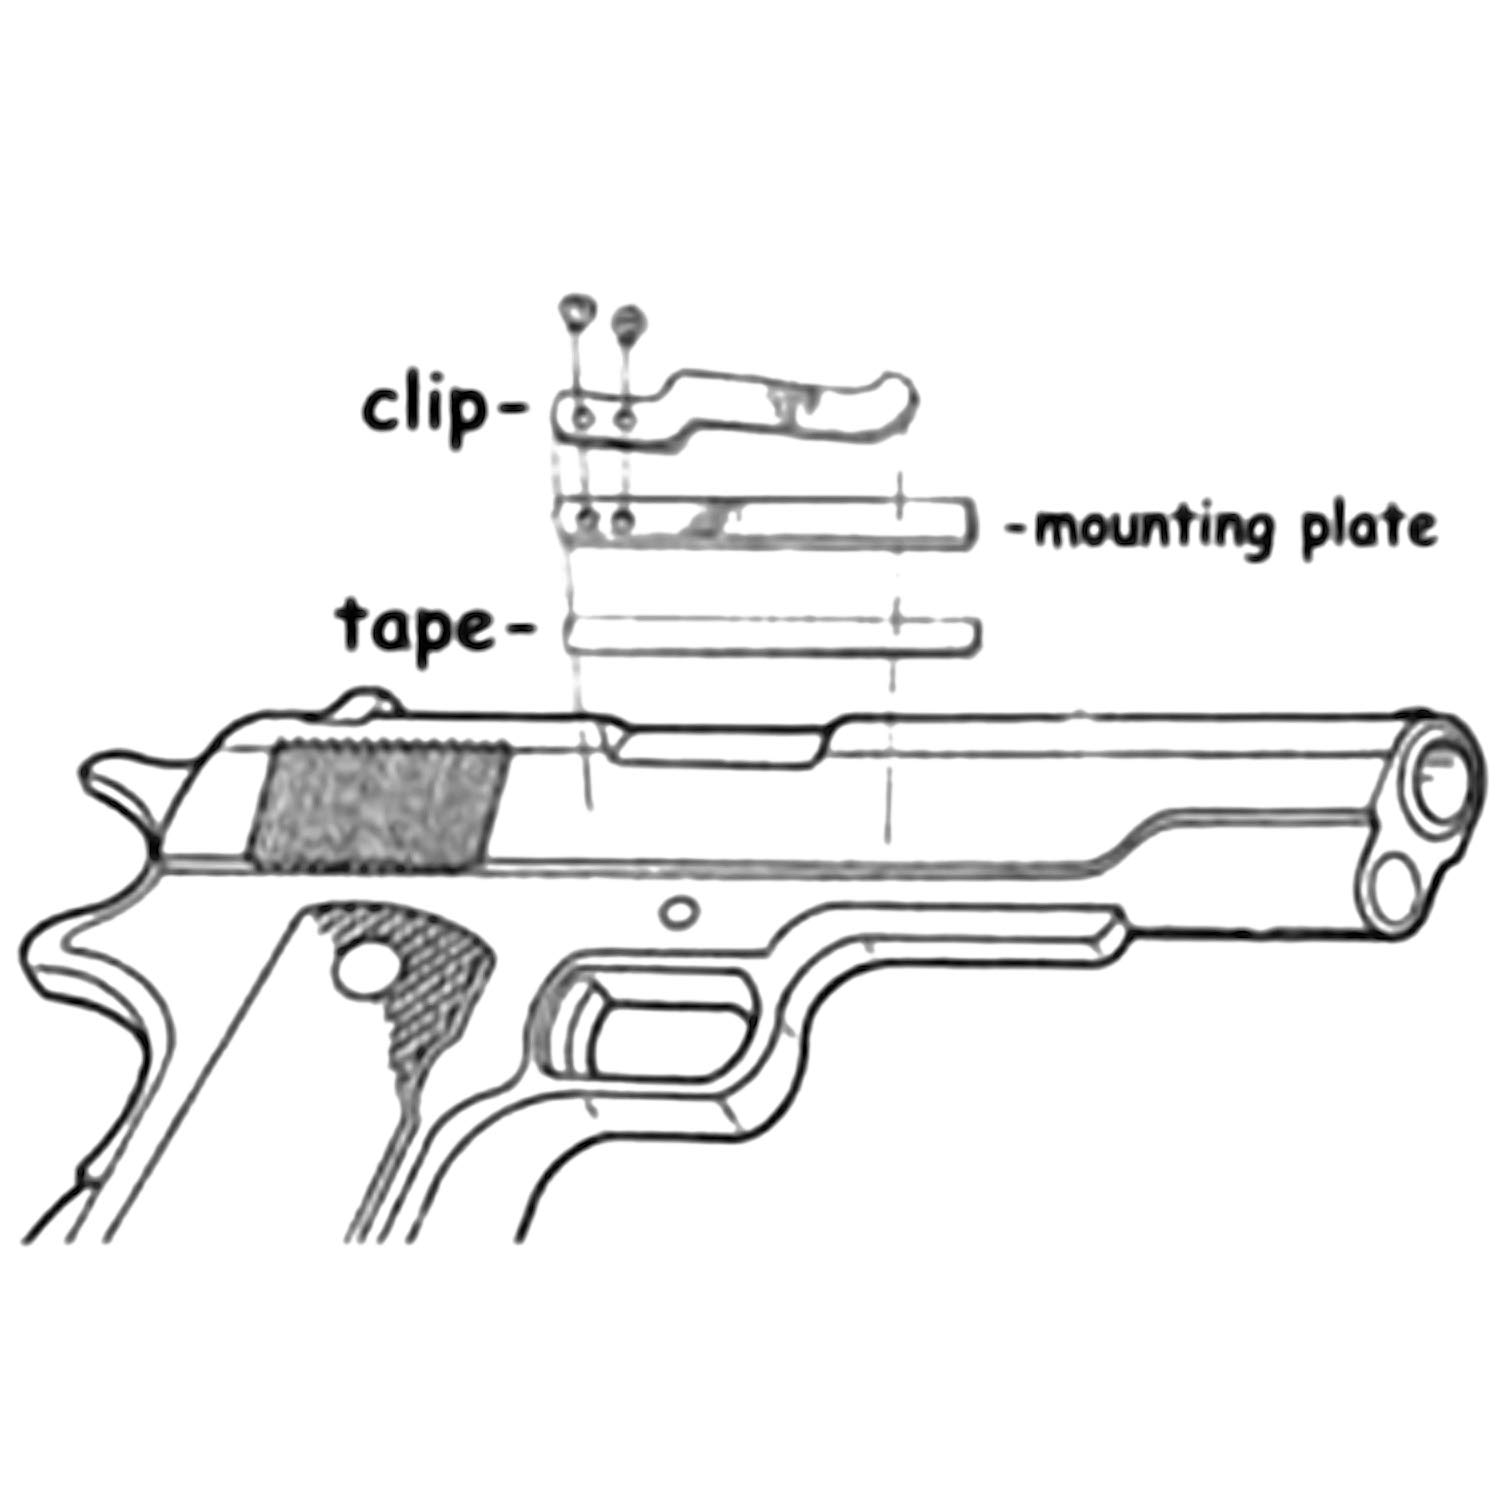 Clipdraw Sa B Universal Gun Holster Black Sports Glock Pistol Parts Diagram Color Coded Showing Frame Pins Springs Outdoors